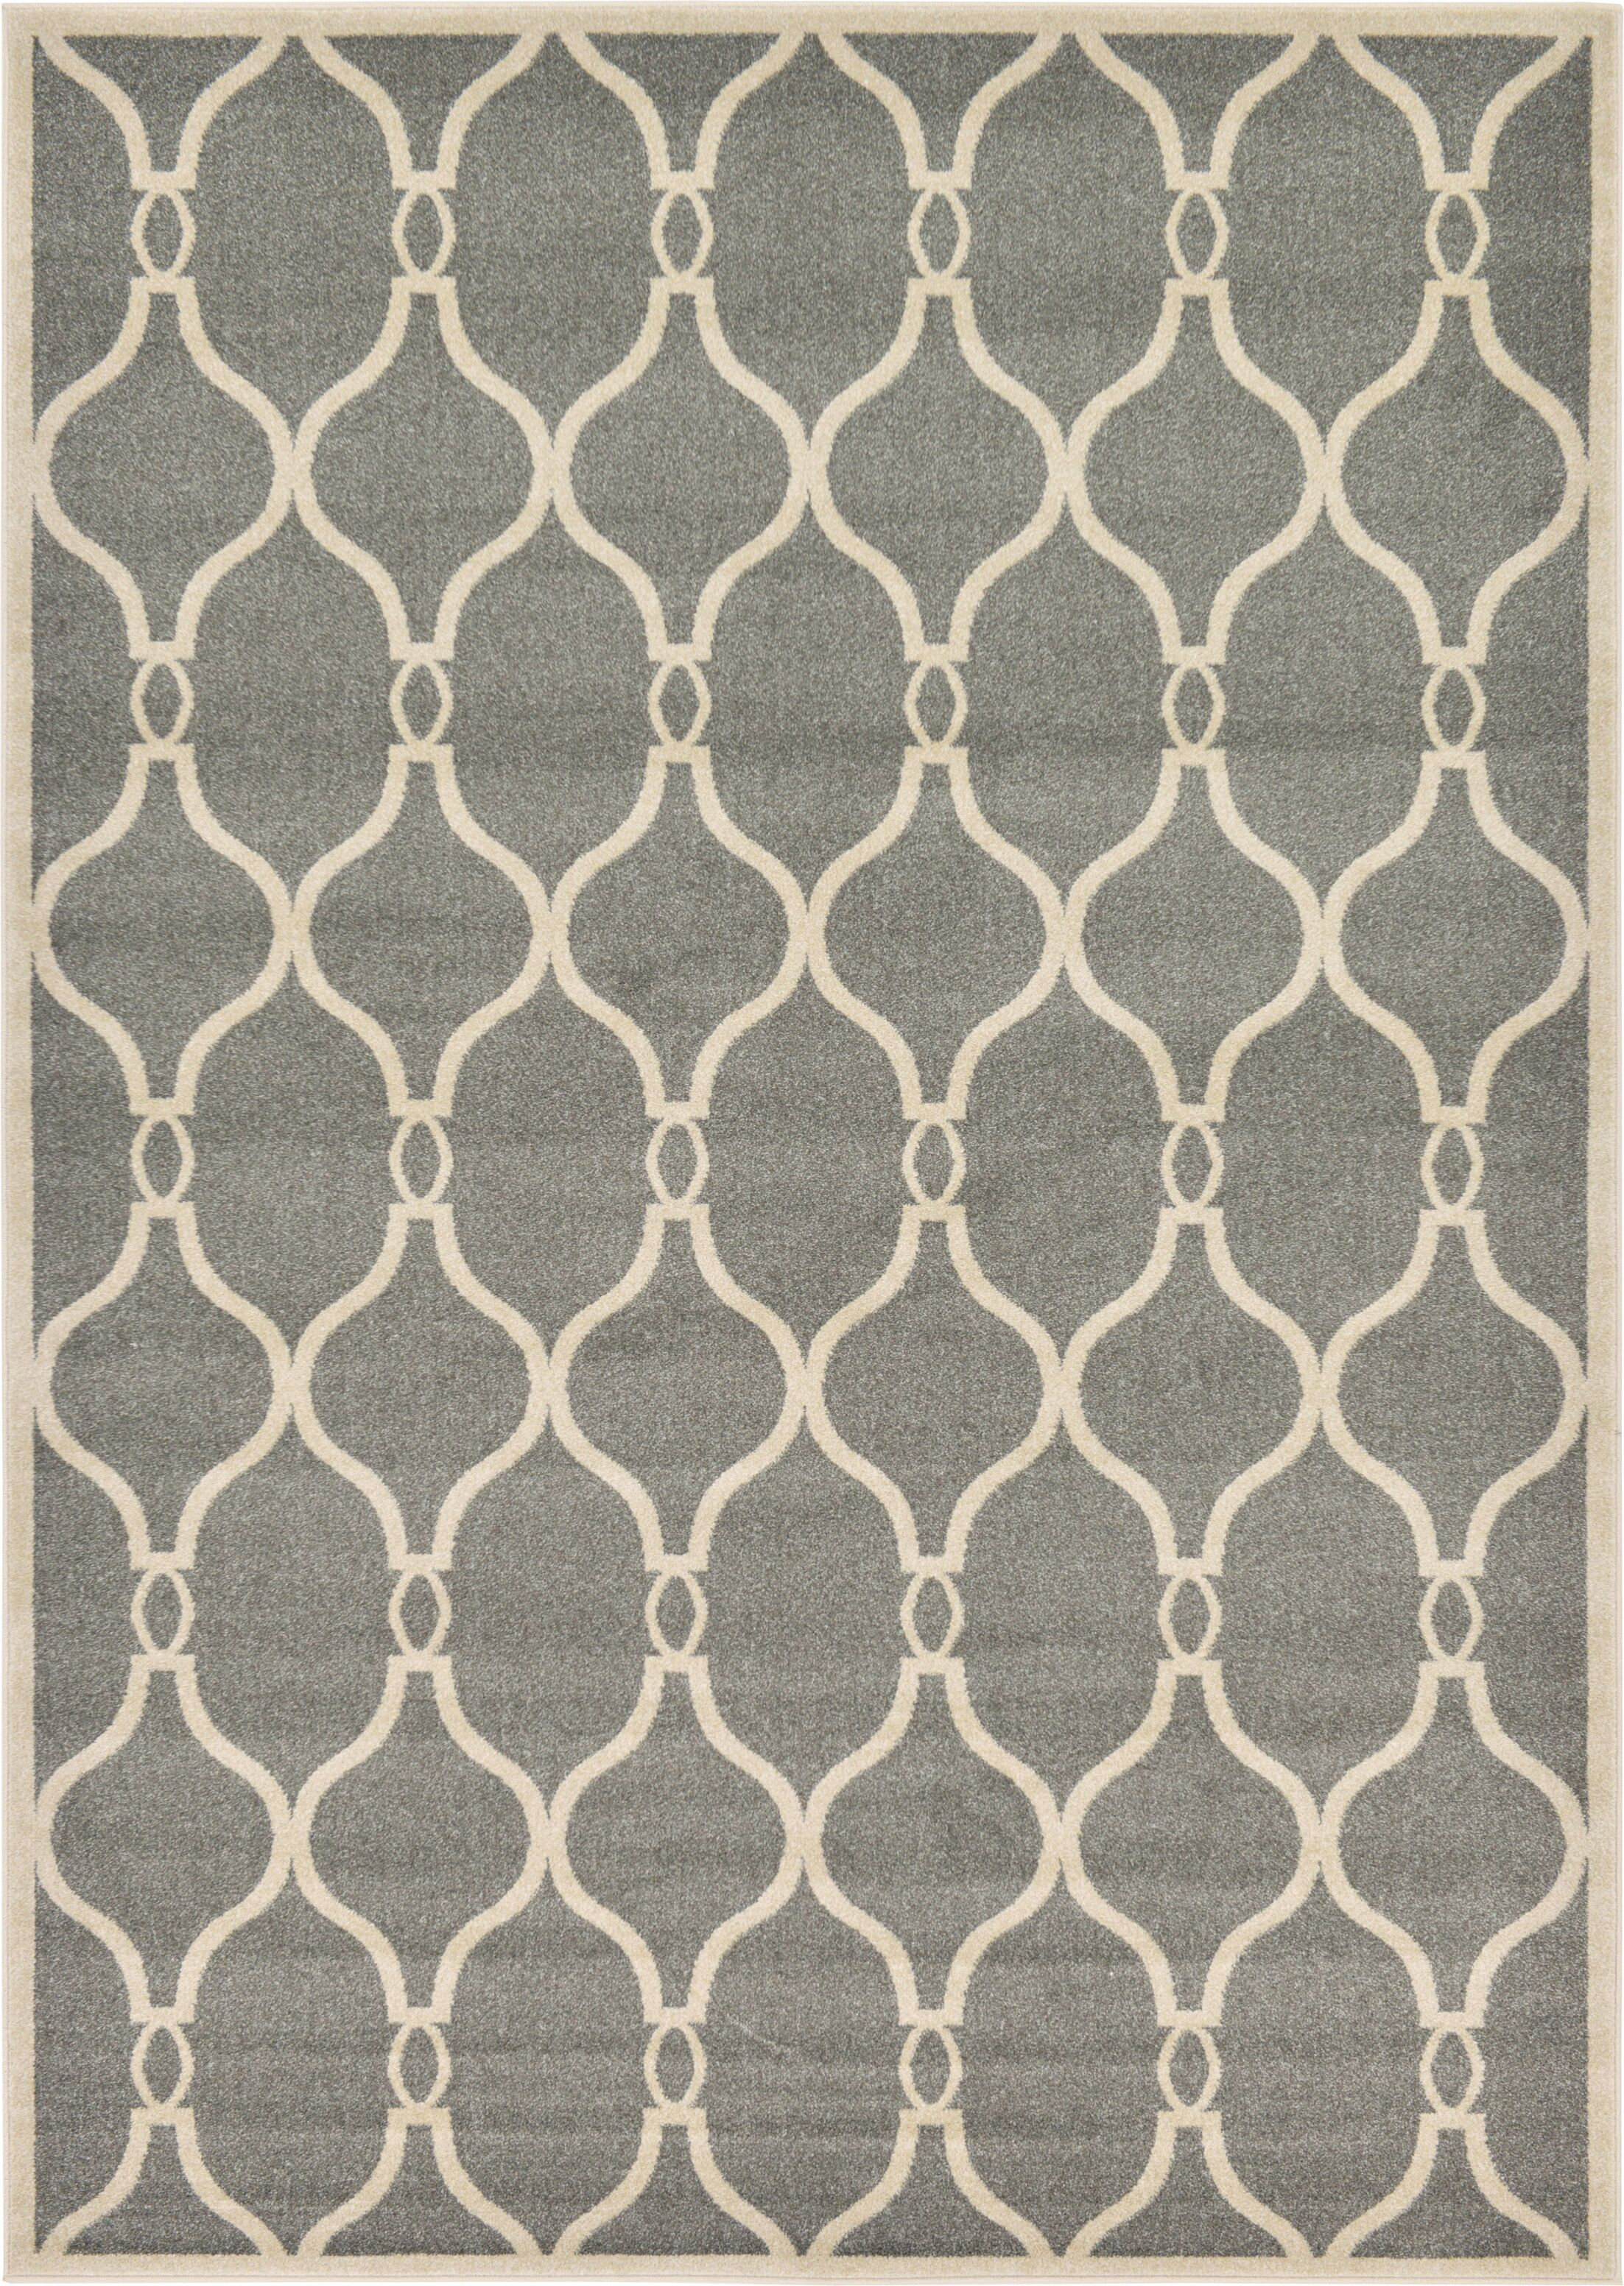 Molly Gray Area Rug Rug Size: Rectangle 7' x 10'